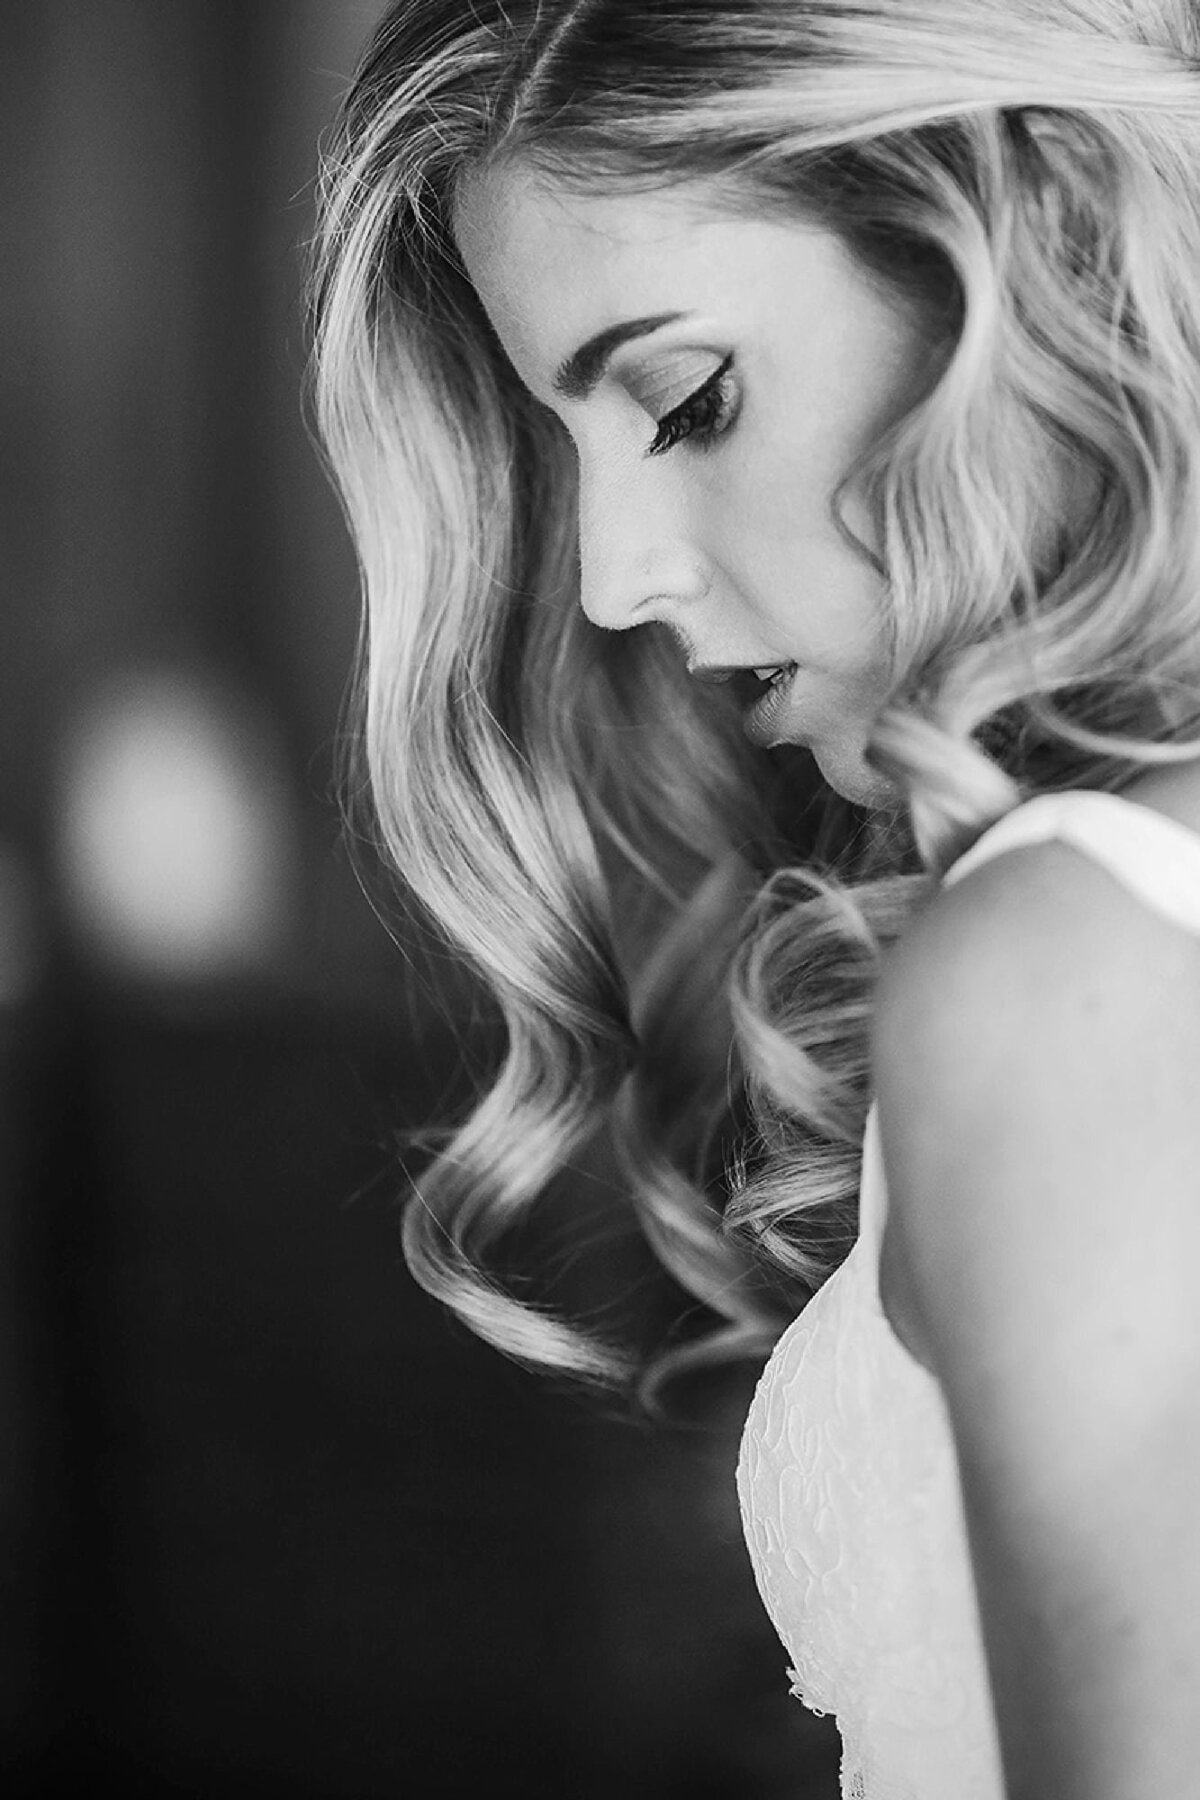 Merriman's Kapalua wedding photographer bridal portrait in black and white